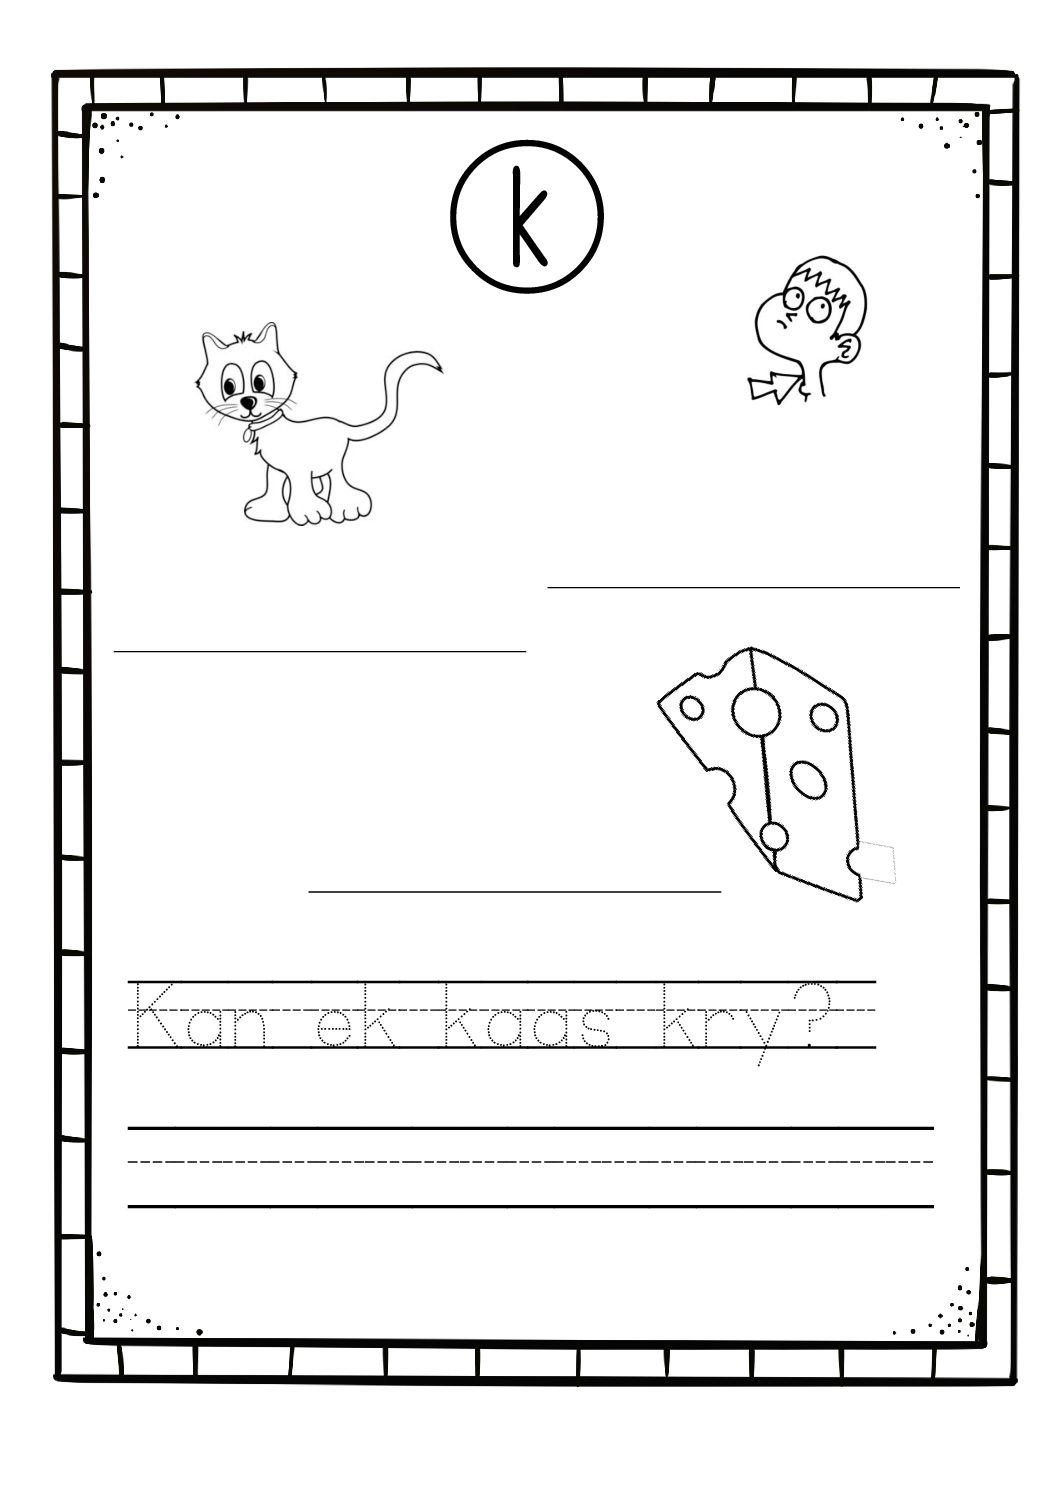 Worksheet For Grade 1 Afrikaans